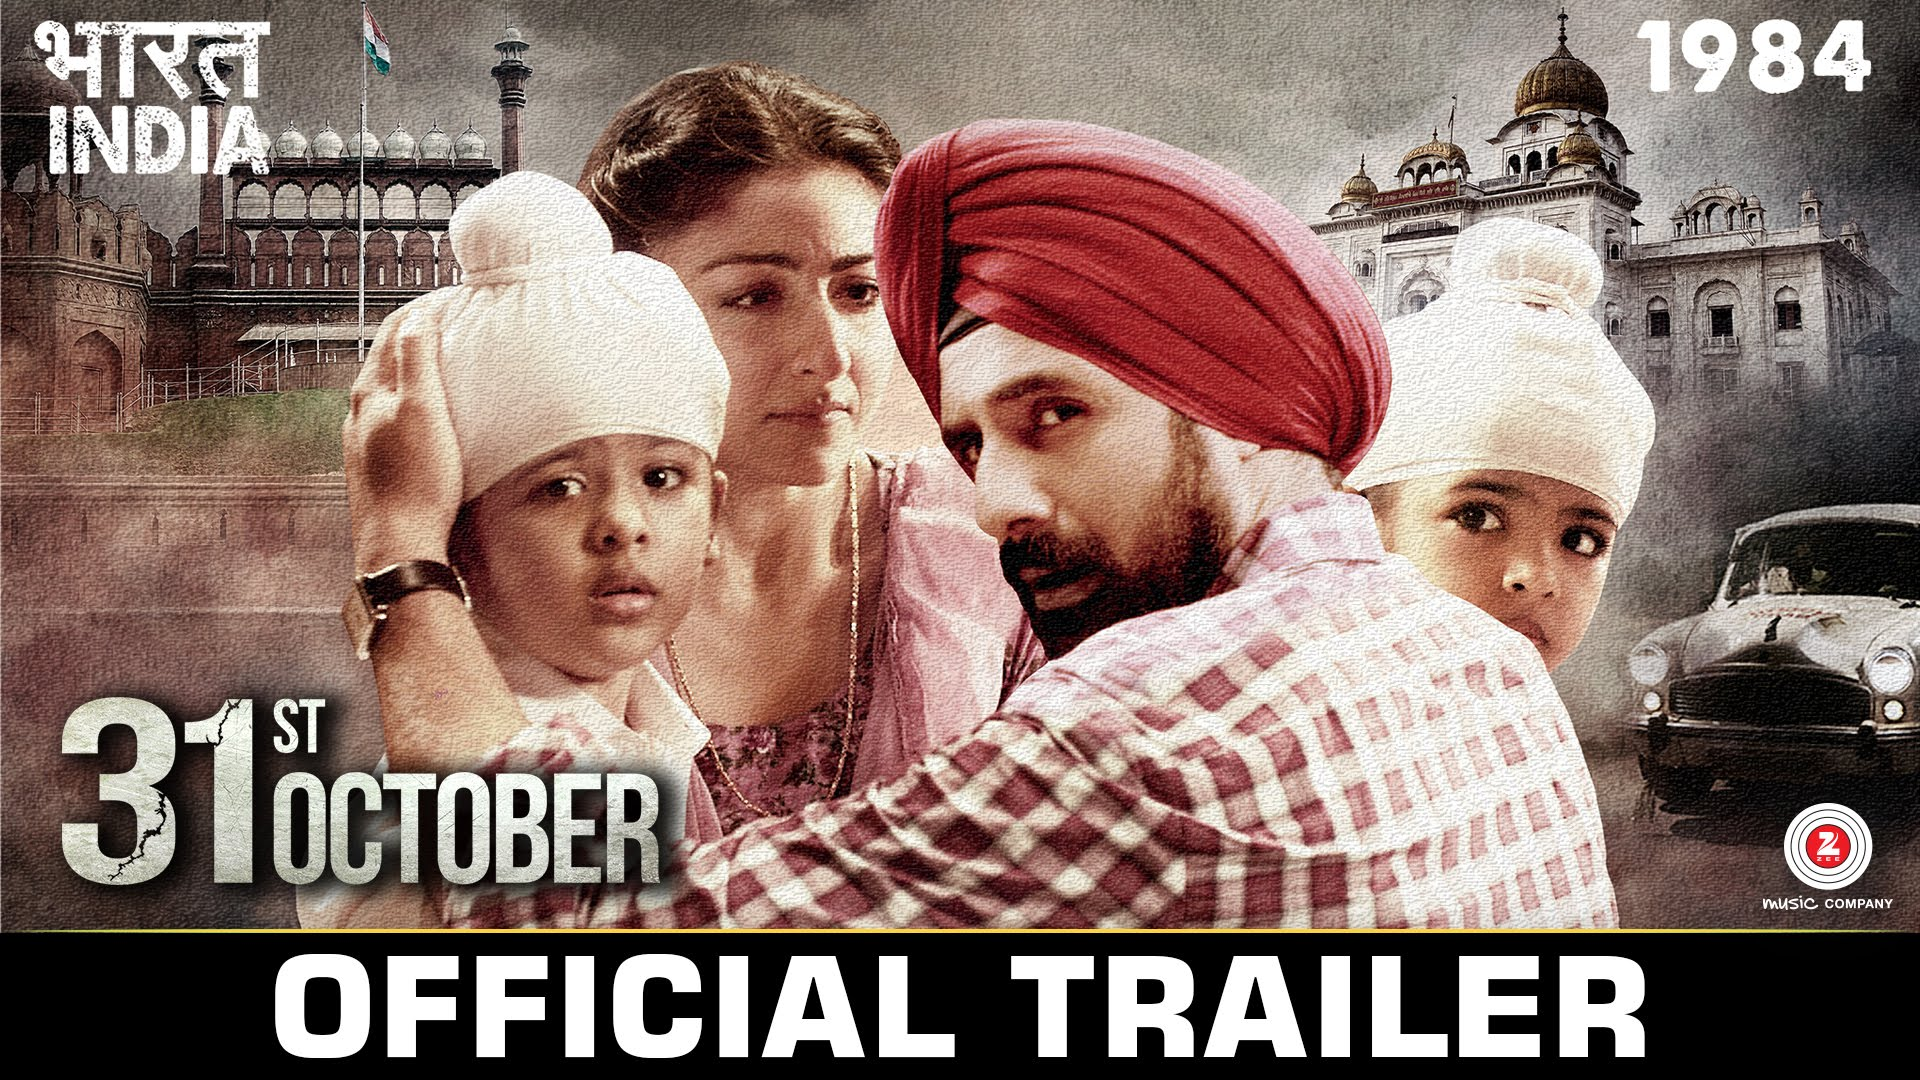 31st October Trailer Review- Based on Anti-Sikh Riots, it will make your blood curl!